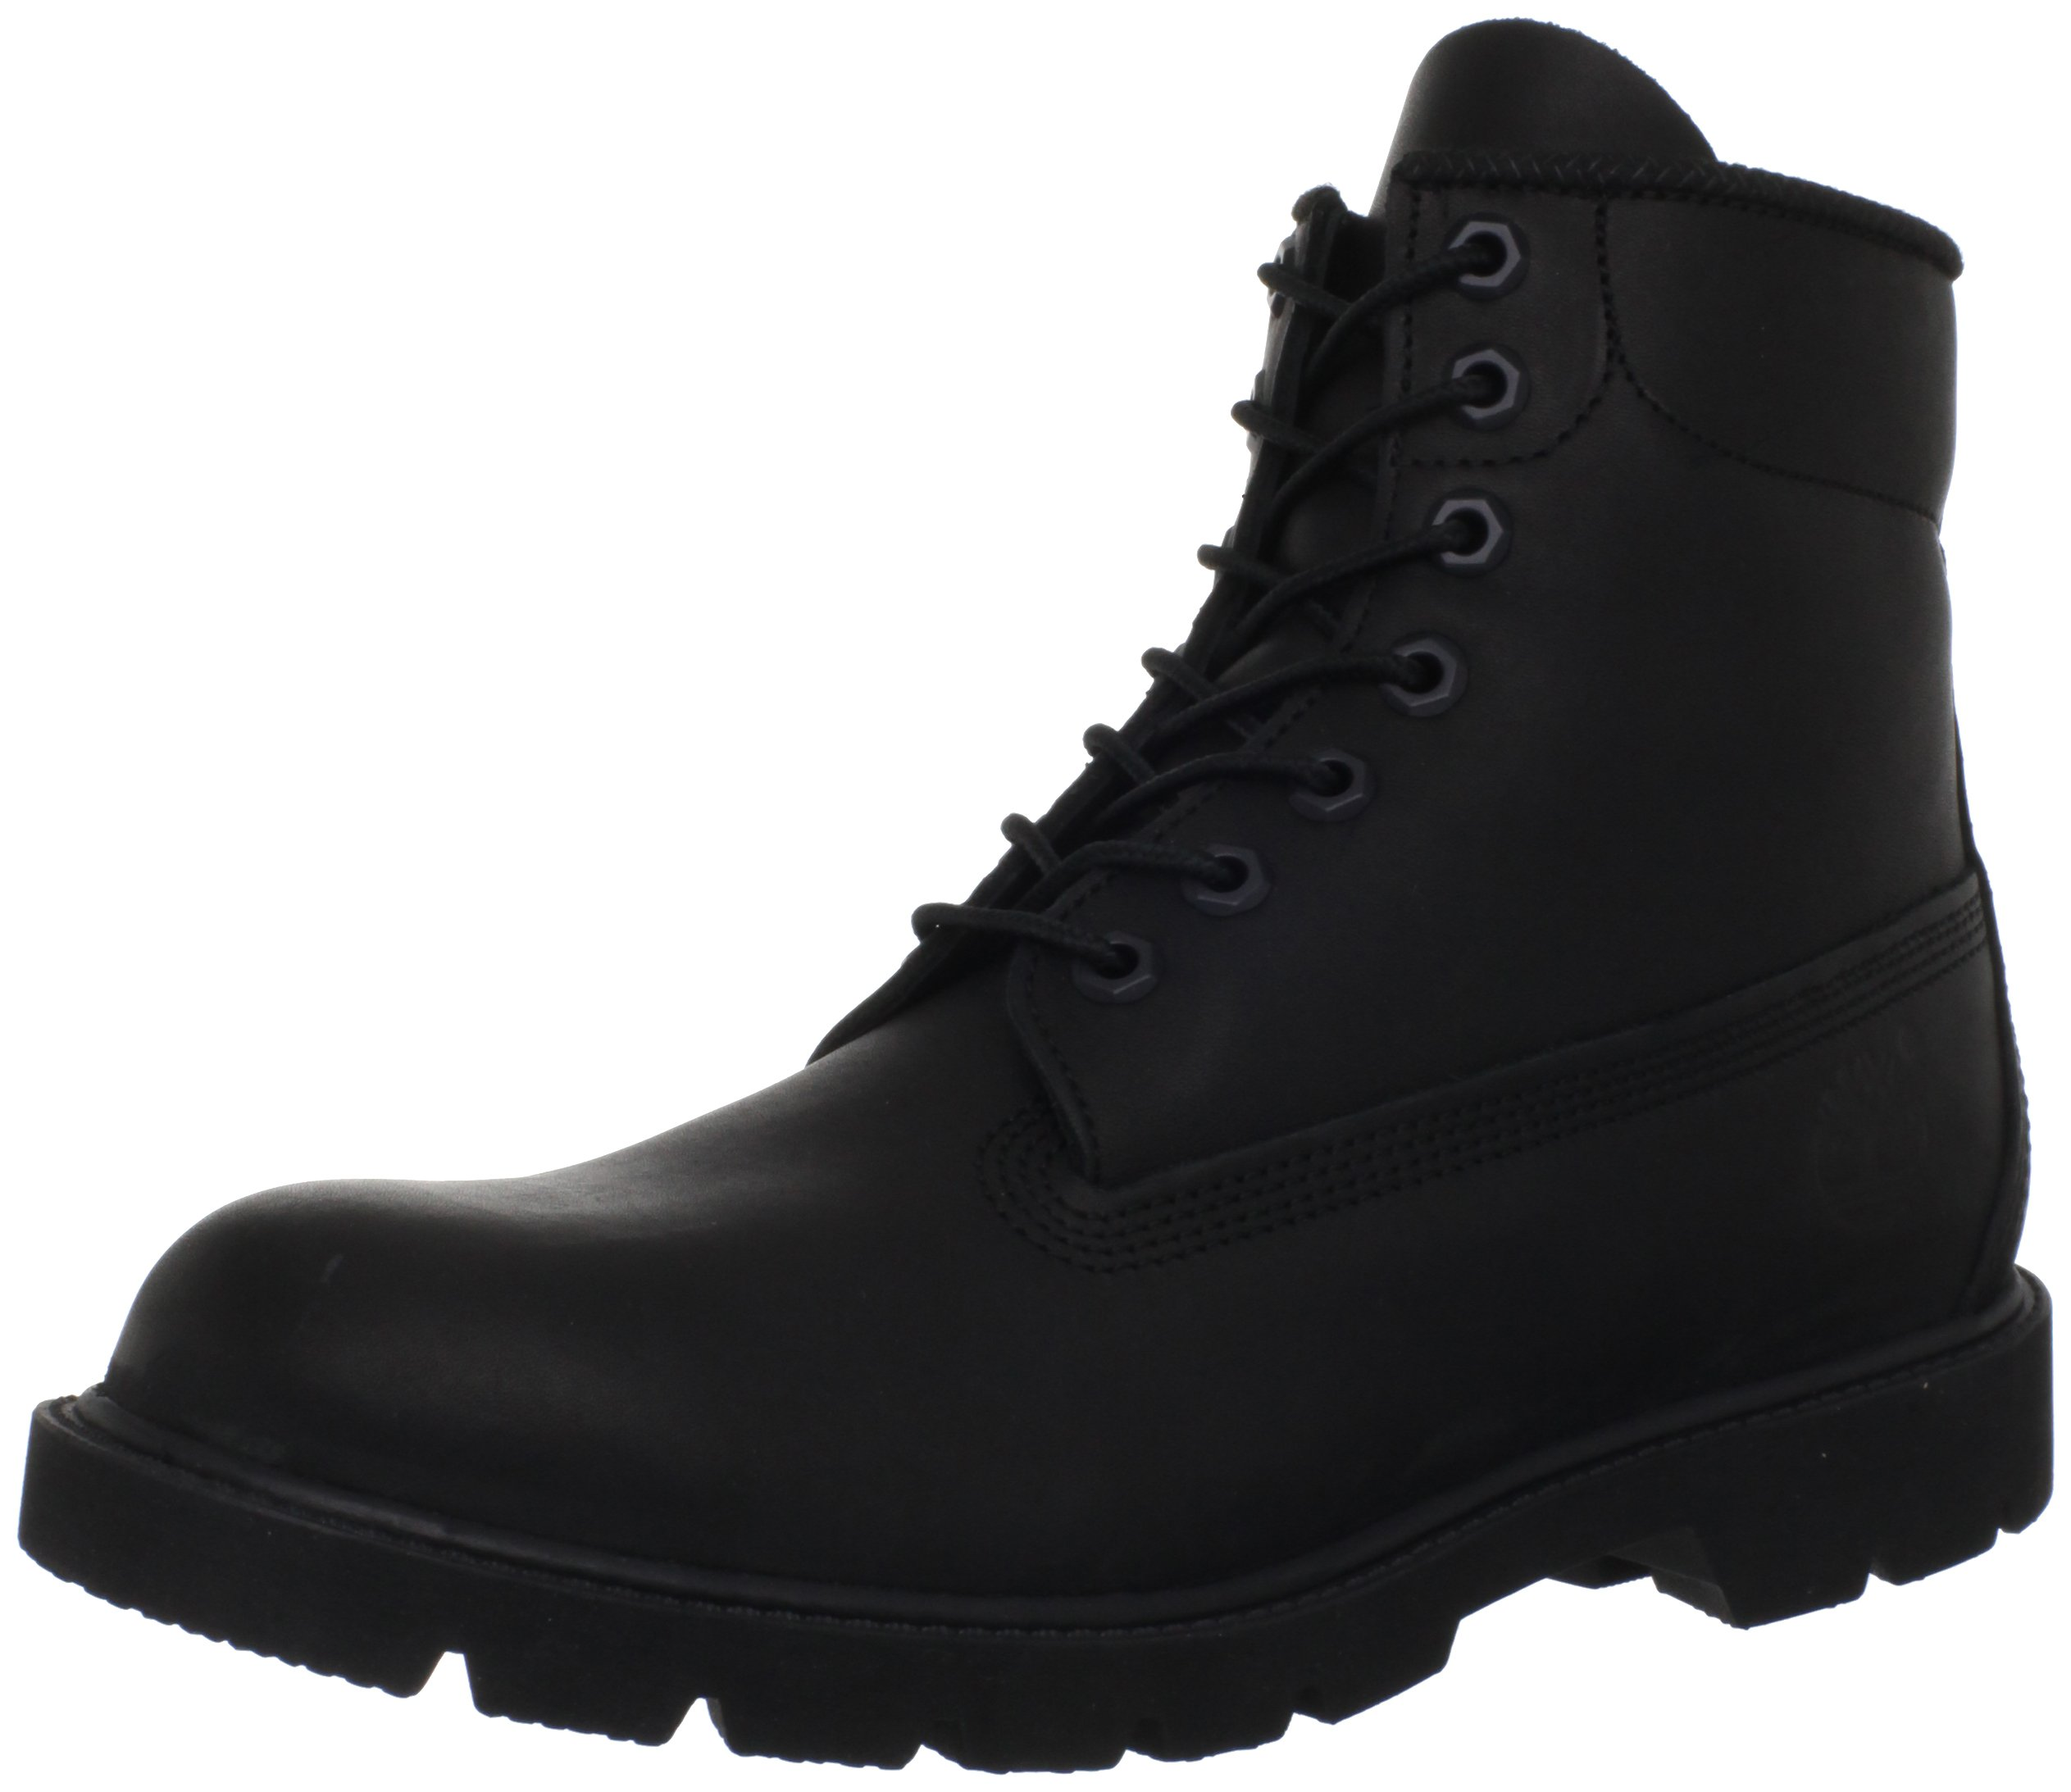 Timberland Men's Six-Inch Basic Boot,Black,9 W US by Timberland